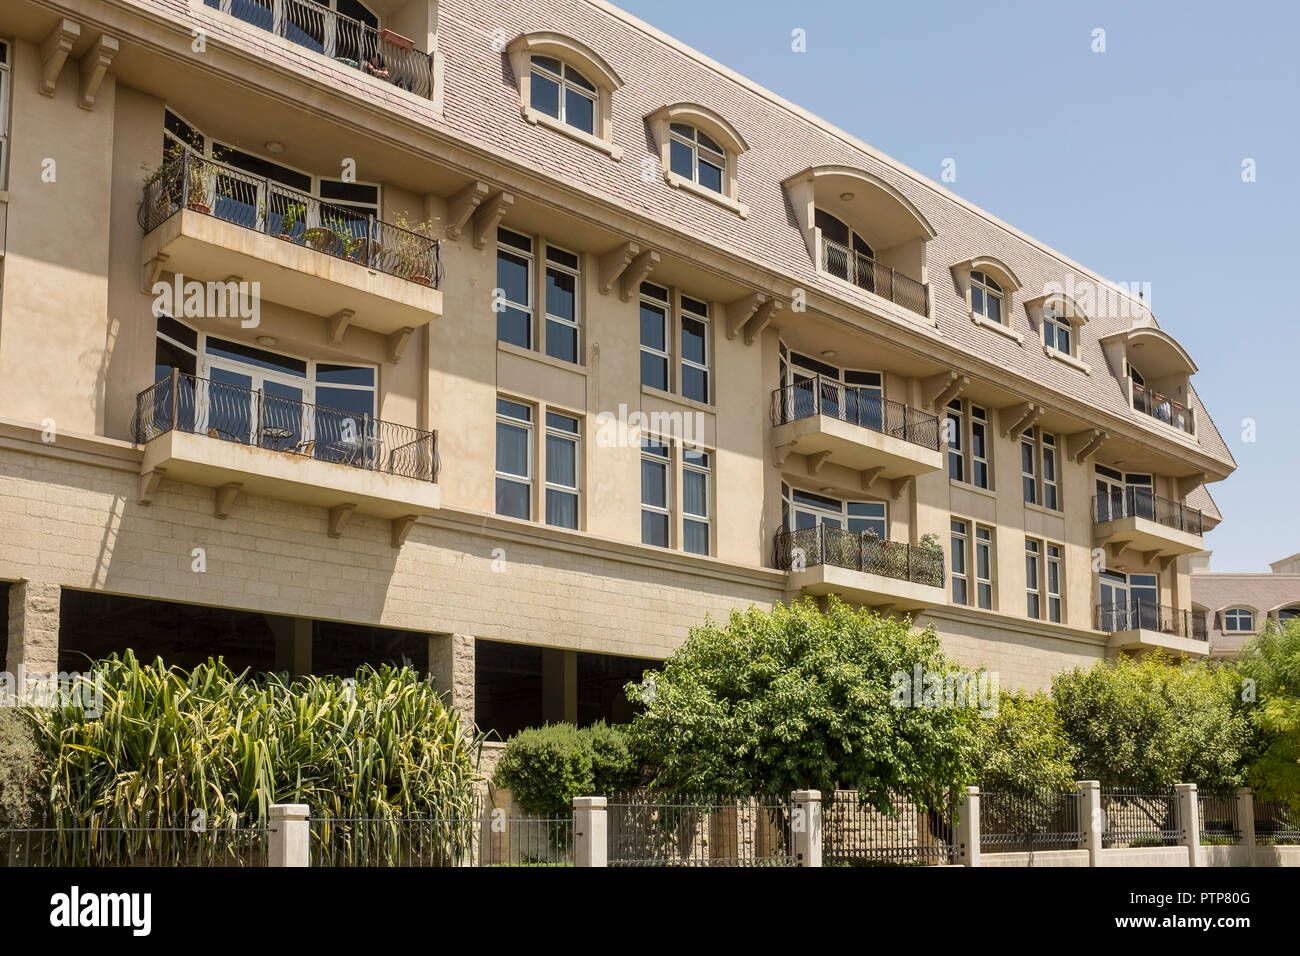 Residential apartments in the Mirdiff district of Dubai, UAE - Stock Image